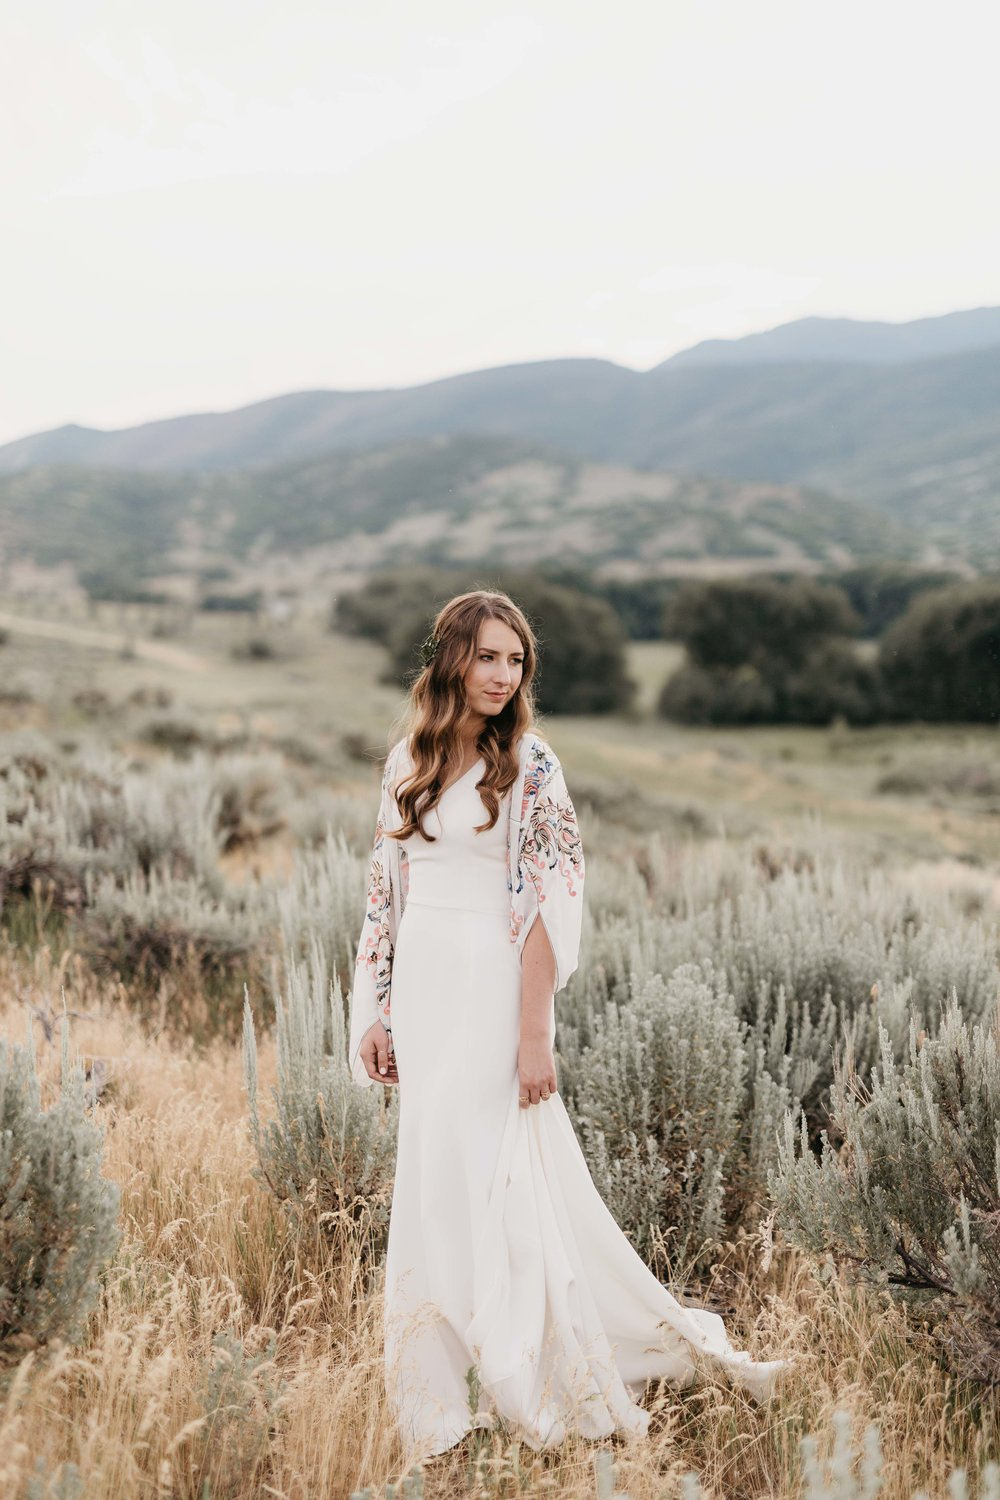 Utah-Wedding-Utah-Photographer-14.jpg